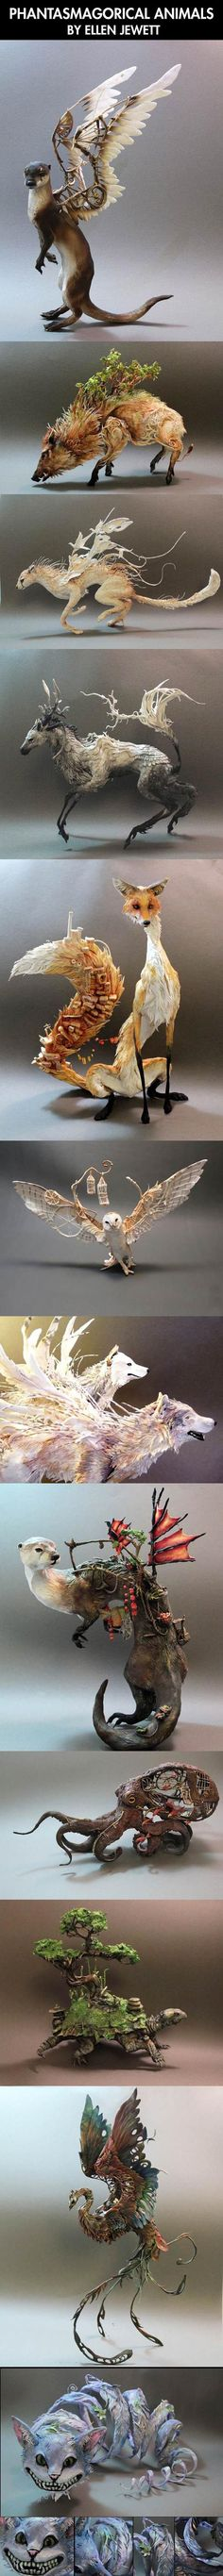 Amazing animal sculpture art…No idea what this is, but it looks really cool!